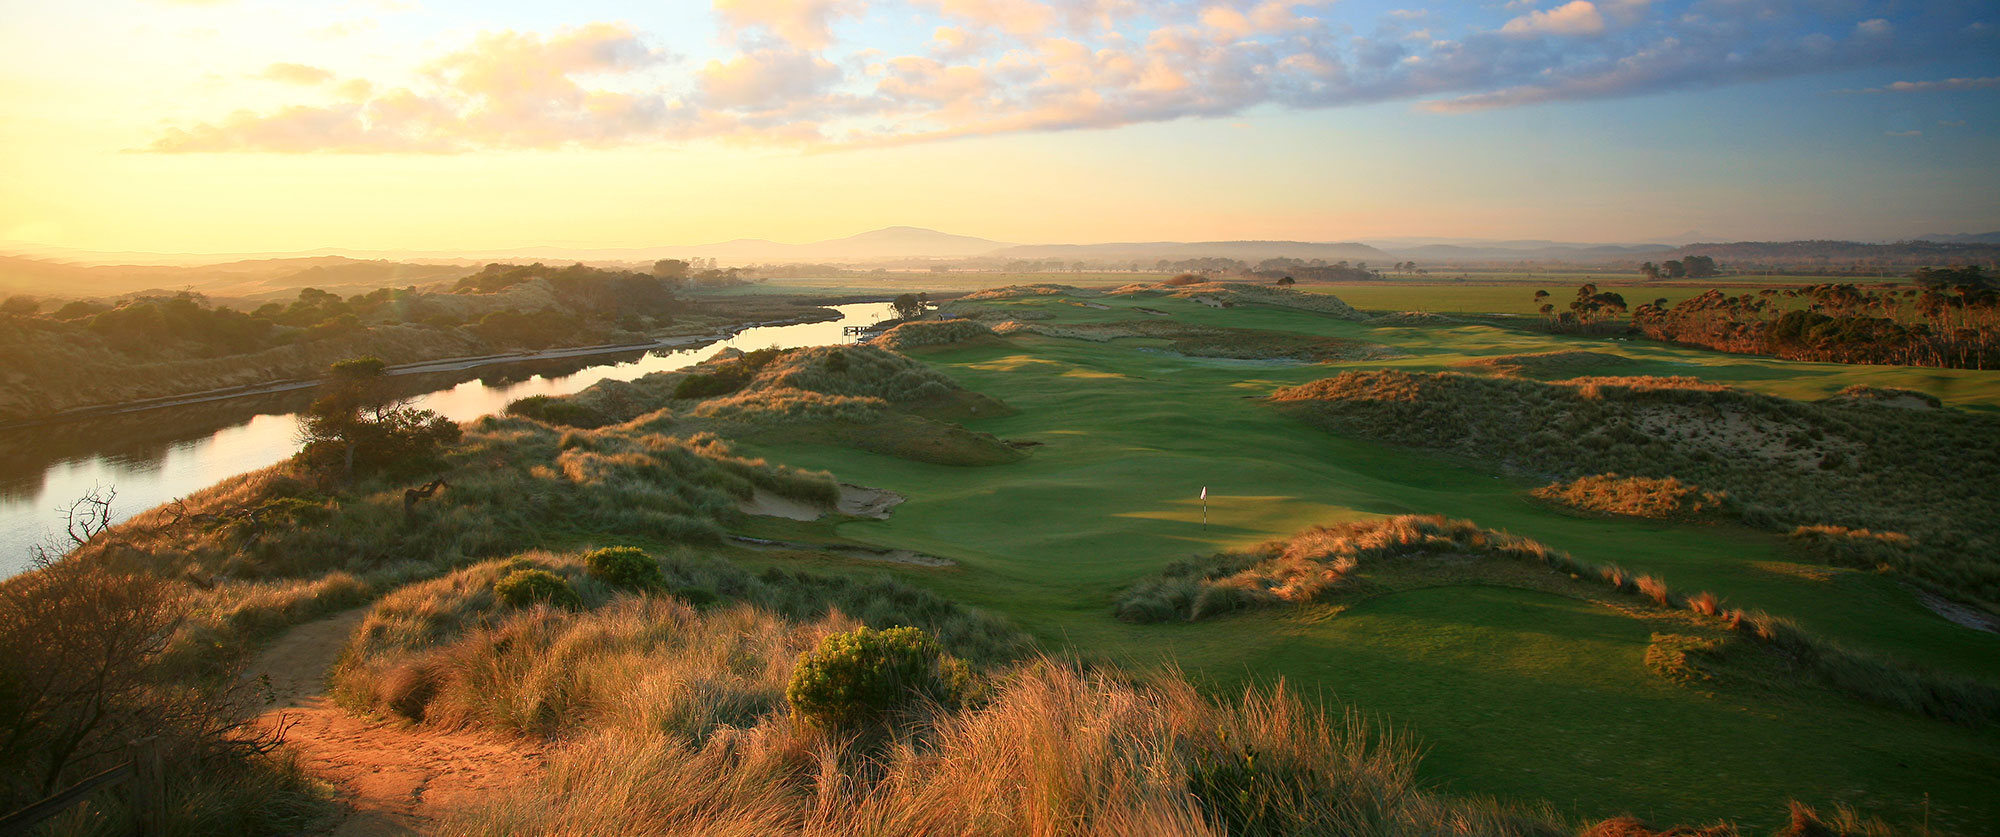 Australia Golf Vacations: Best Australian Golf Courses - Barnbougle Dunes